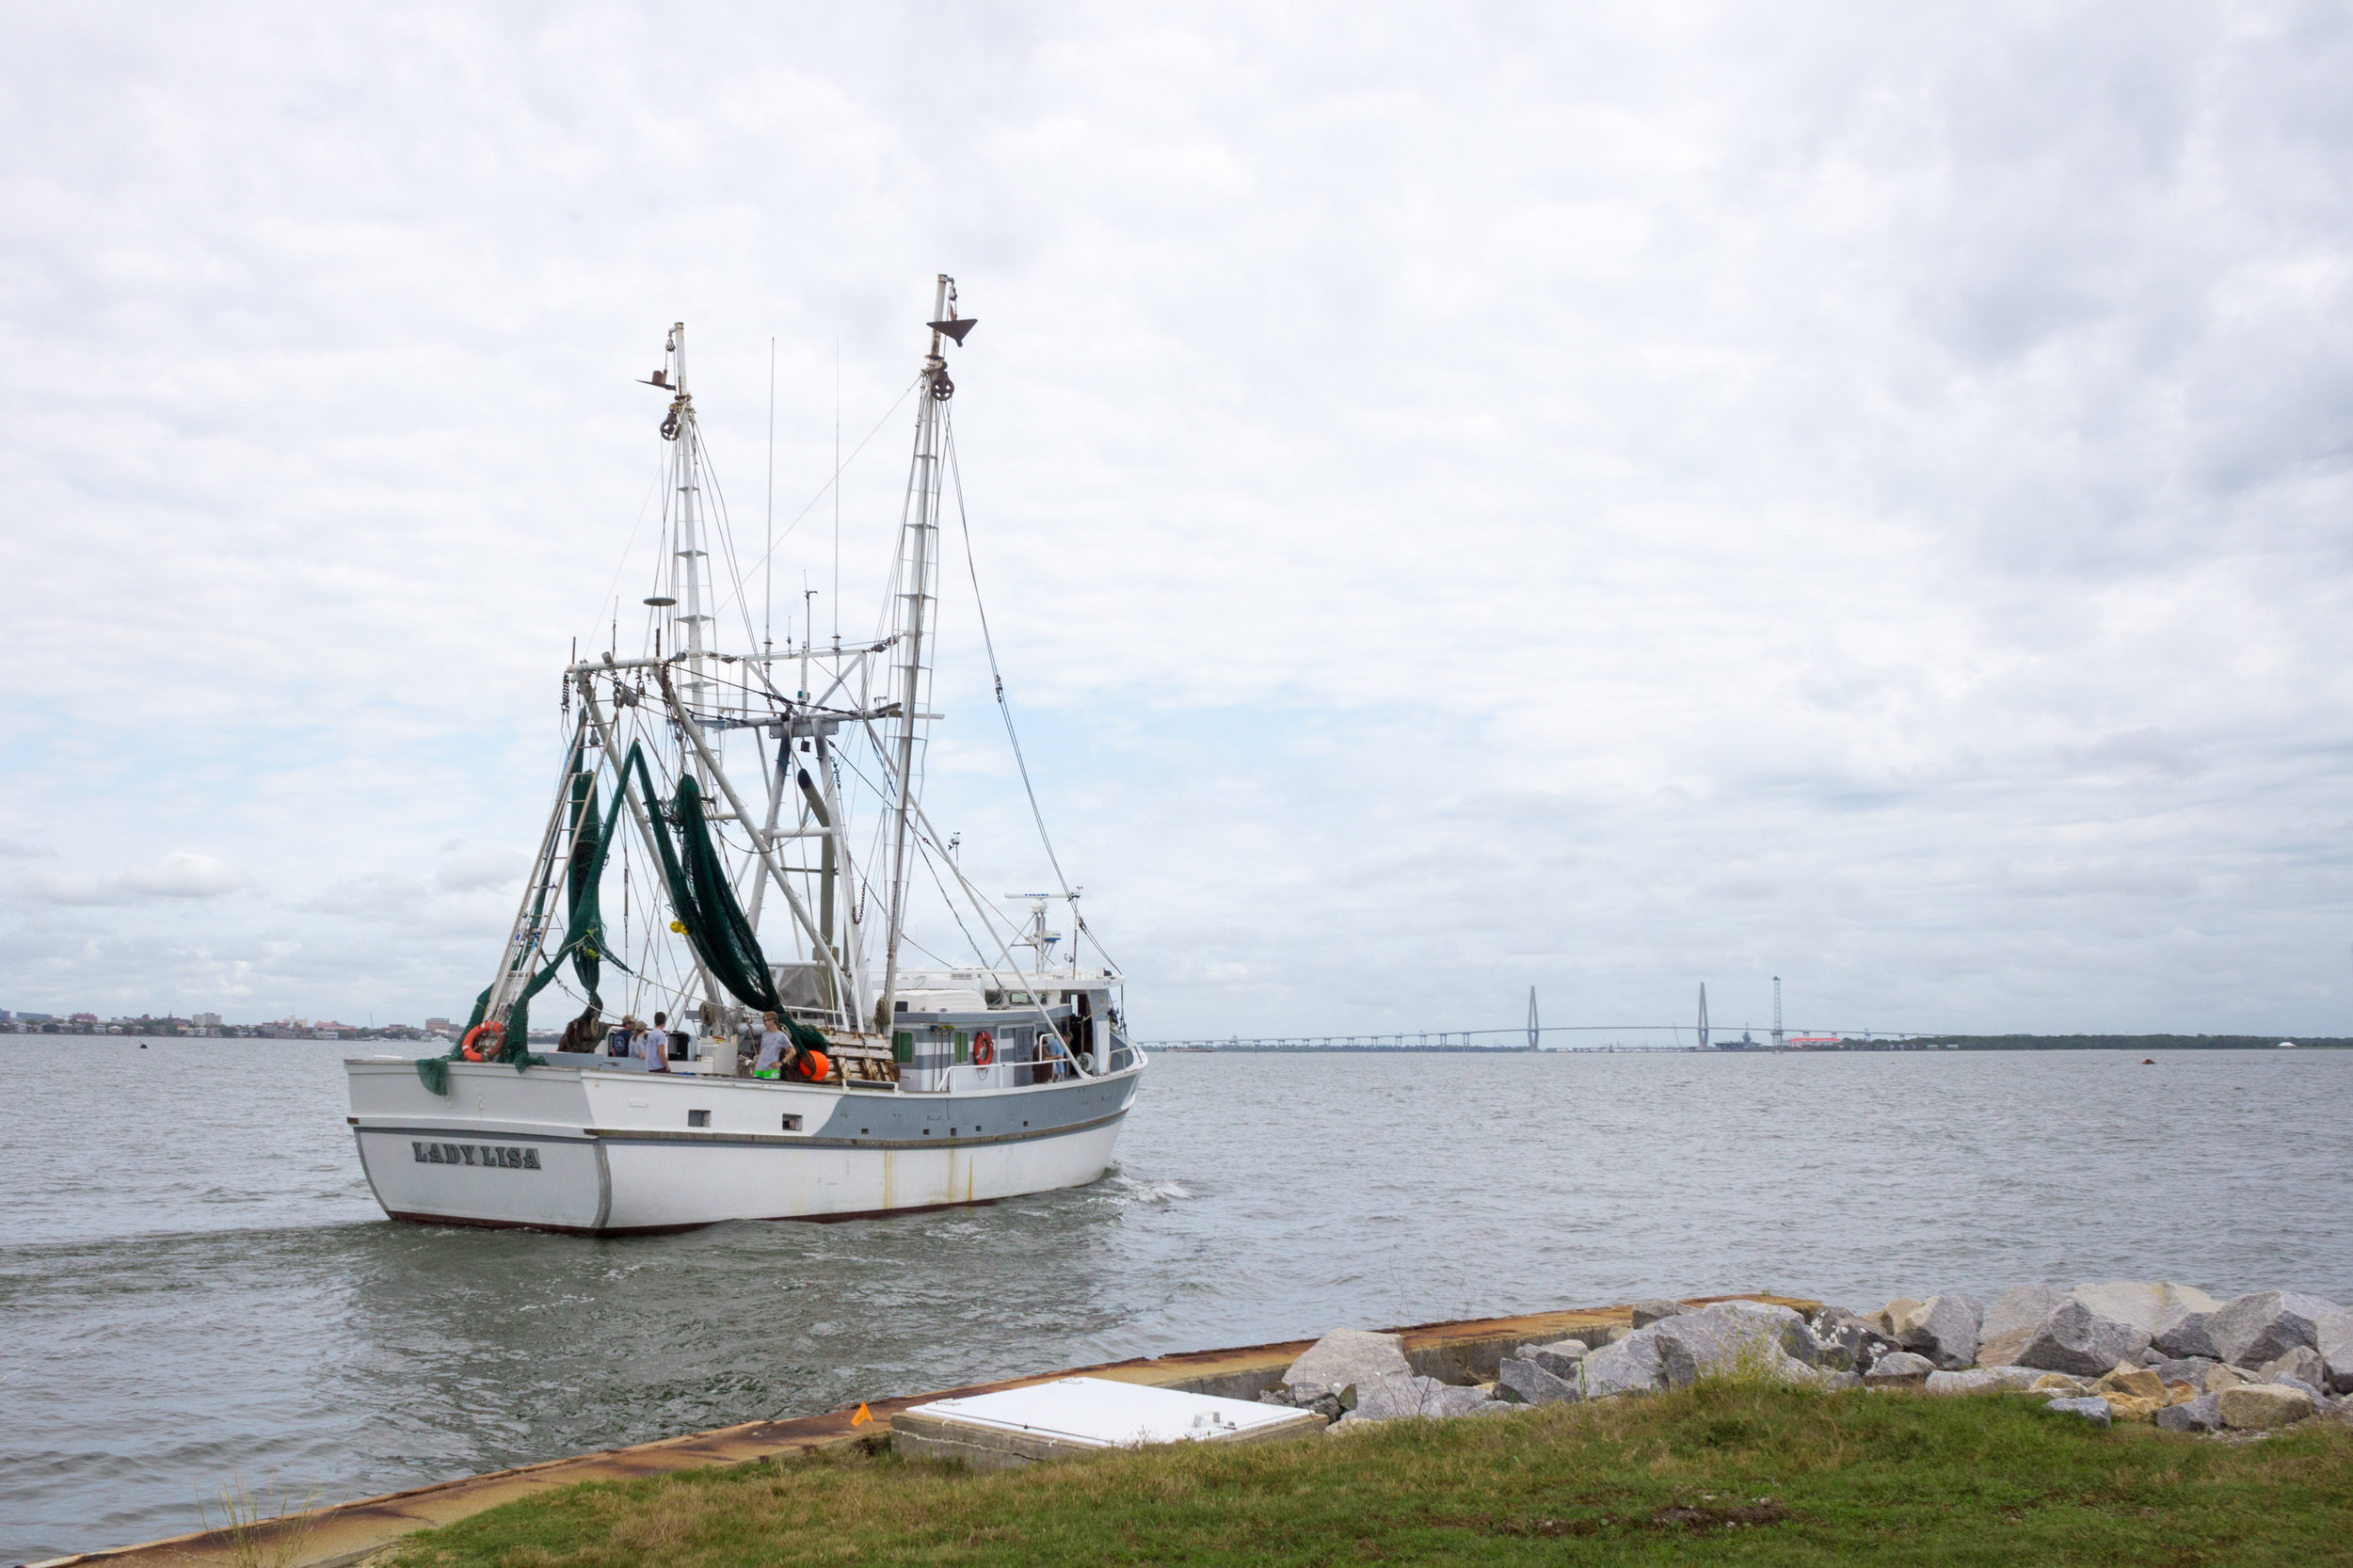 The Lisa departs for a research cruise in the northern half of South Carolina nearshore waters. (Photo: E. Weeks/SCDNR)